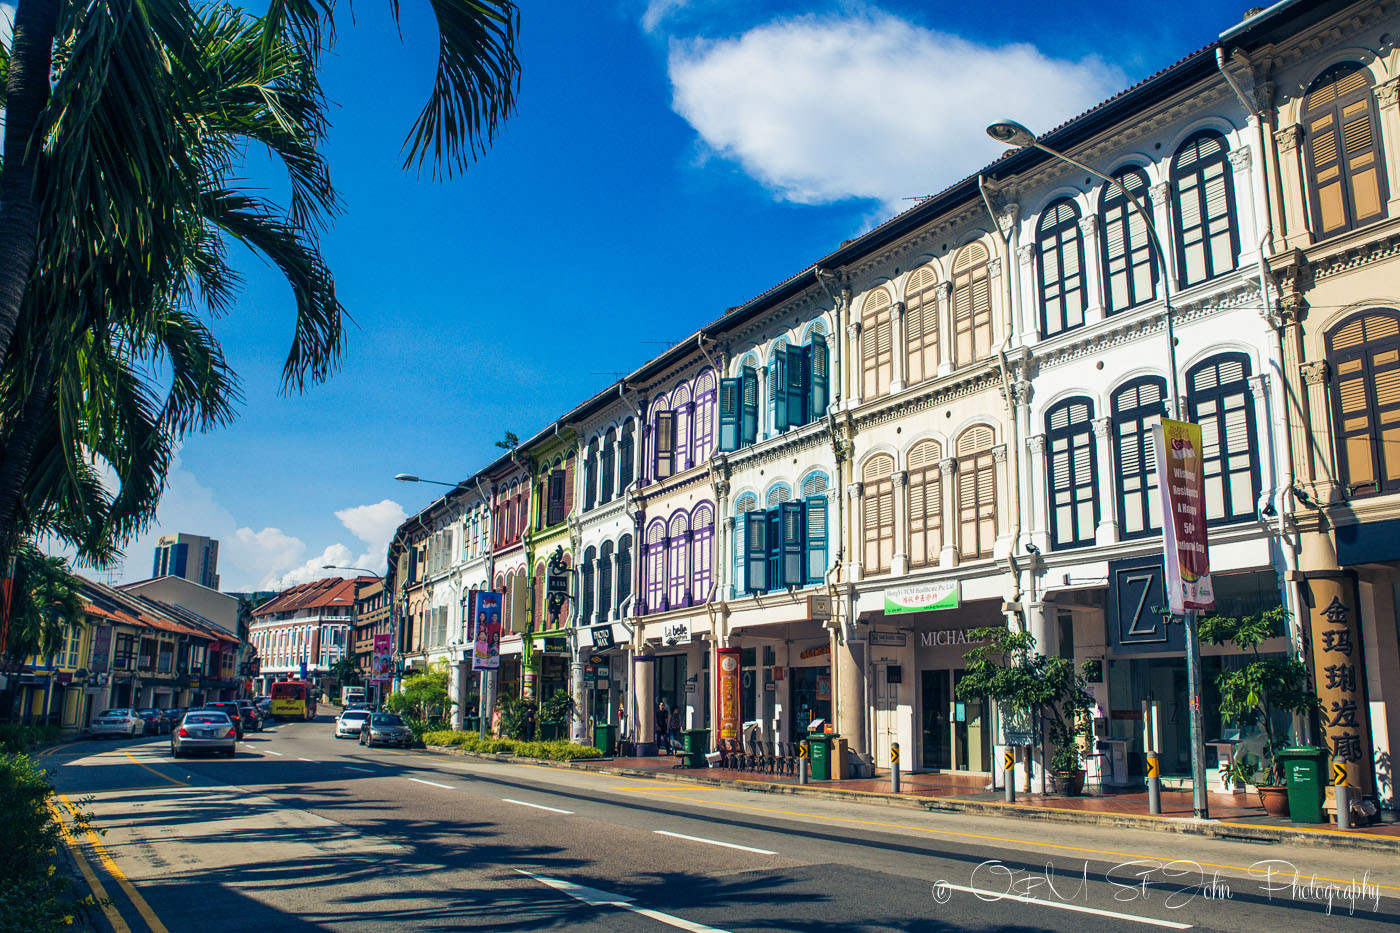 Duxton Rd in Singapore, a lesser known but great area to explore.